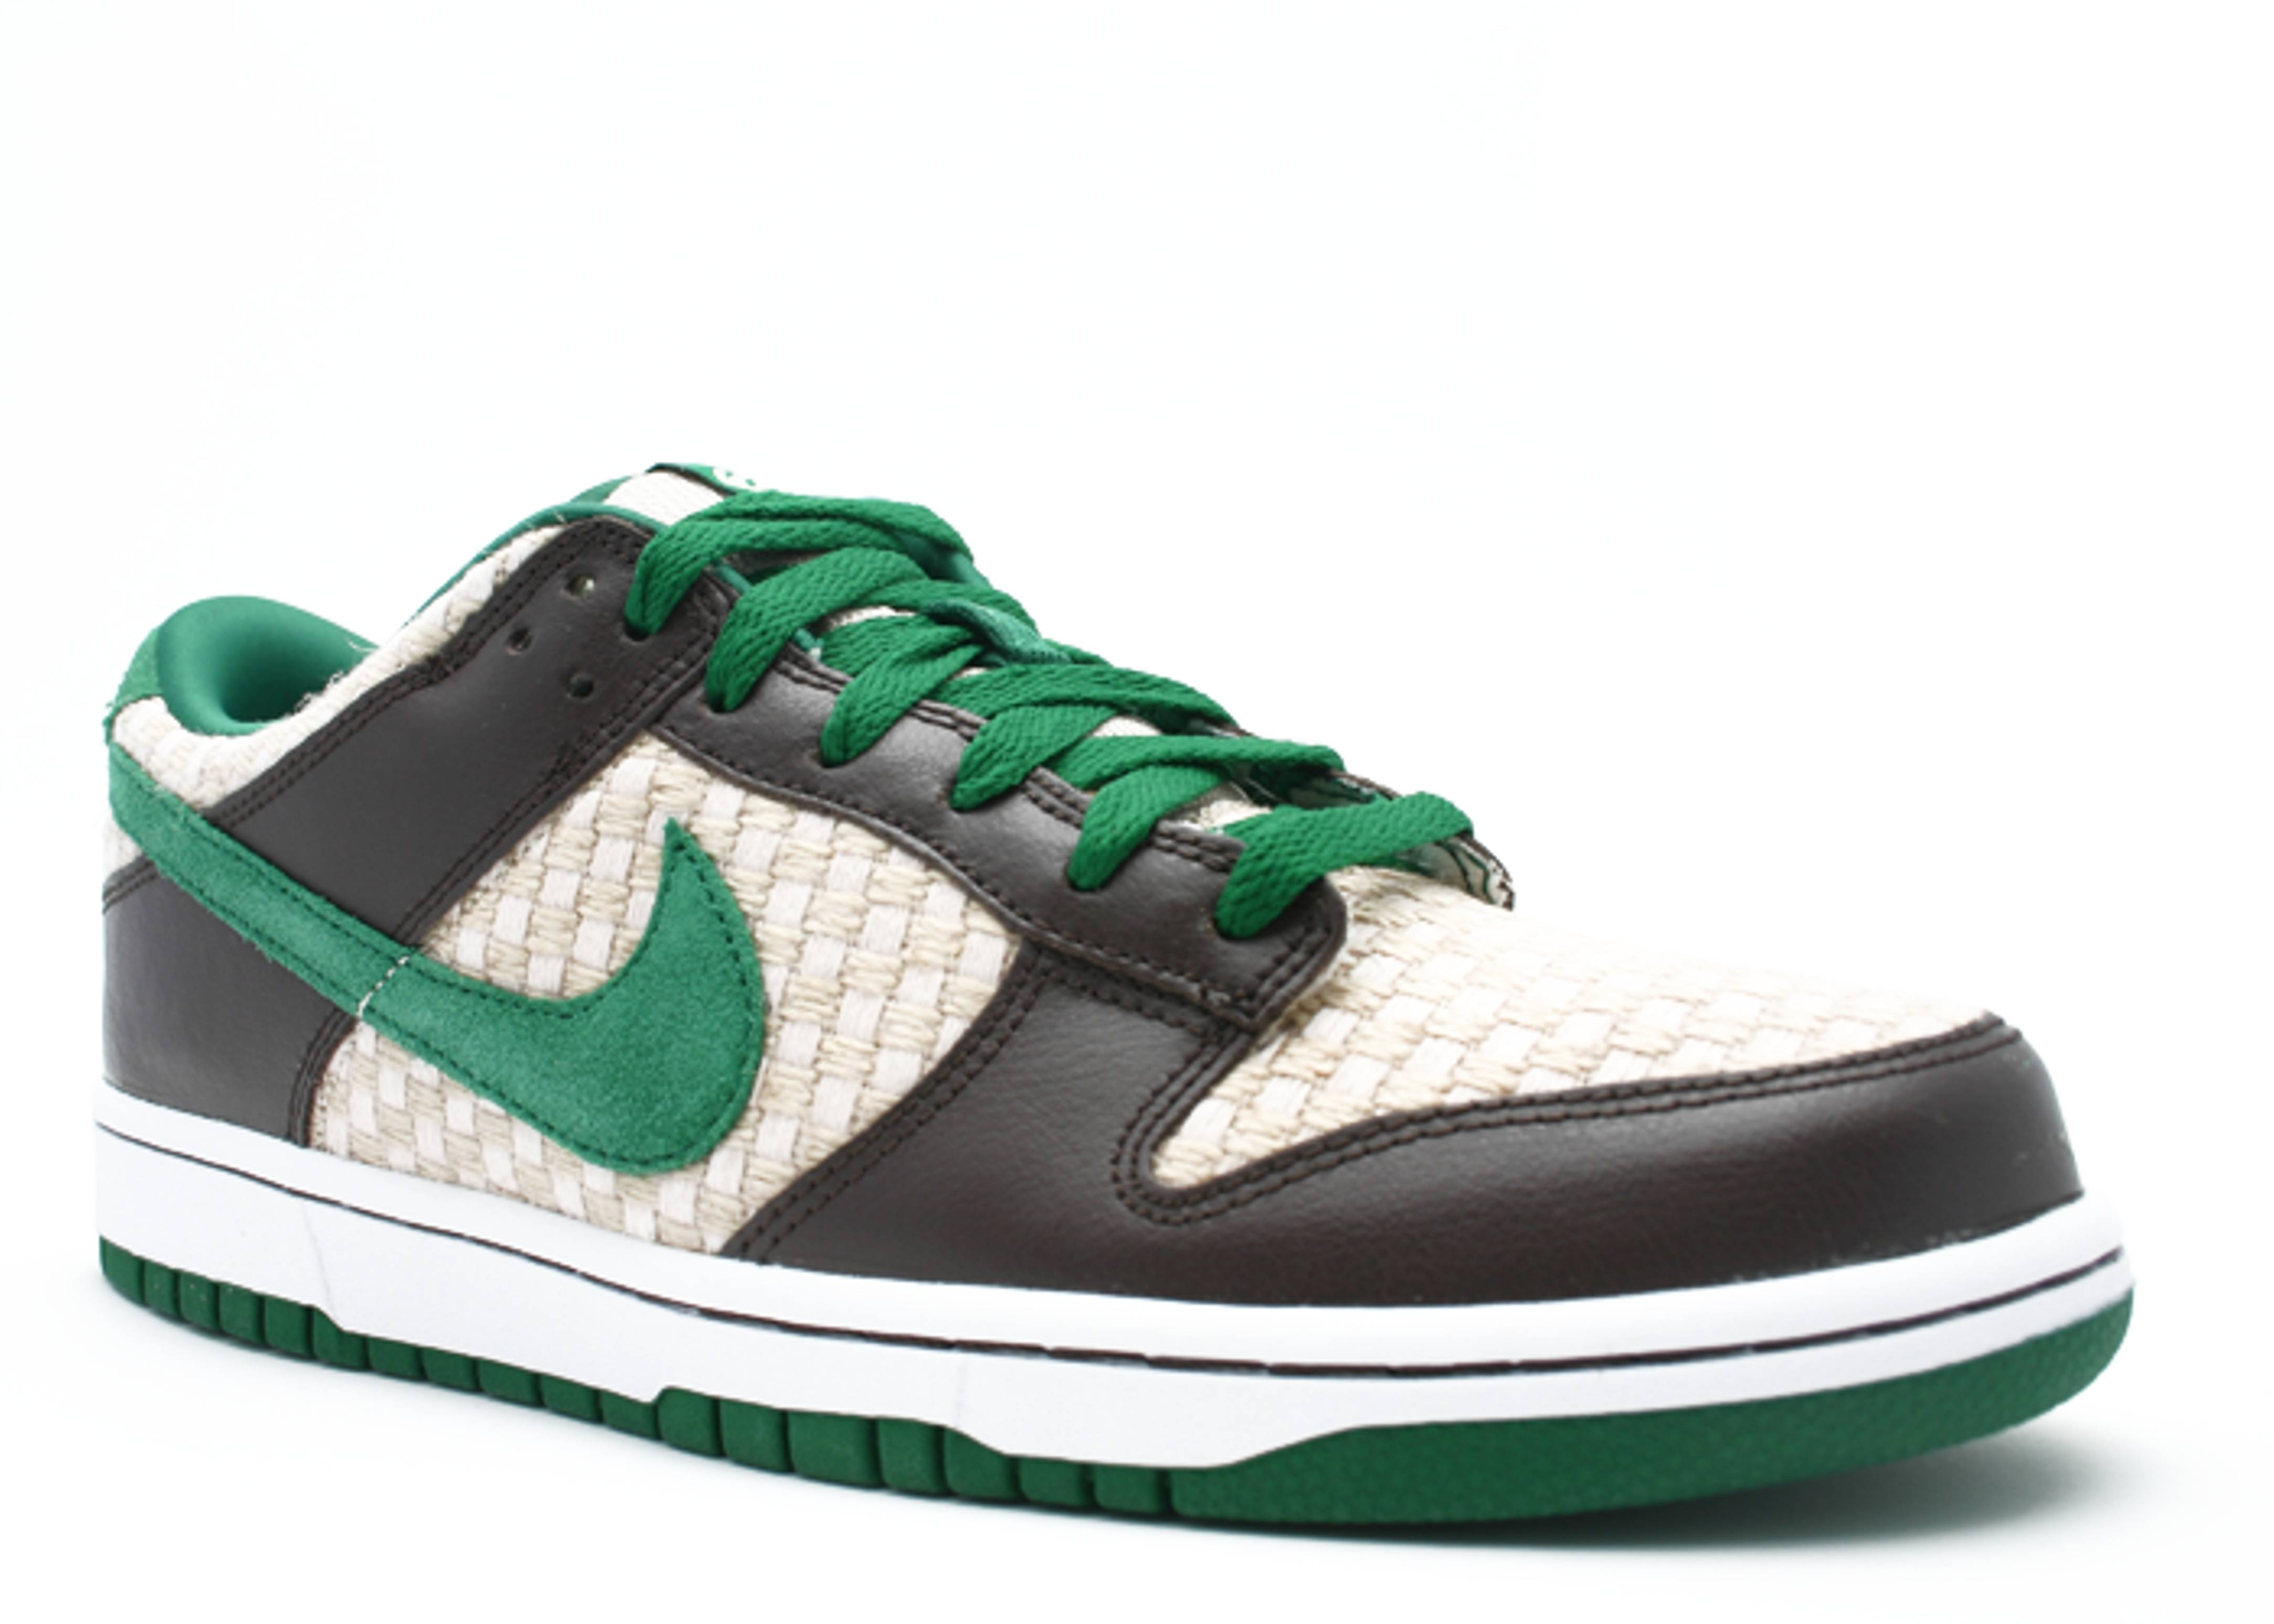 new styles f9267 5be9b Dunk Low 6.0 - Nike - 314142 331 - overcast/pine green ...